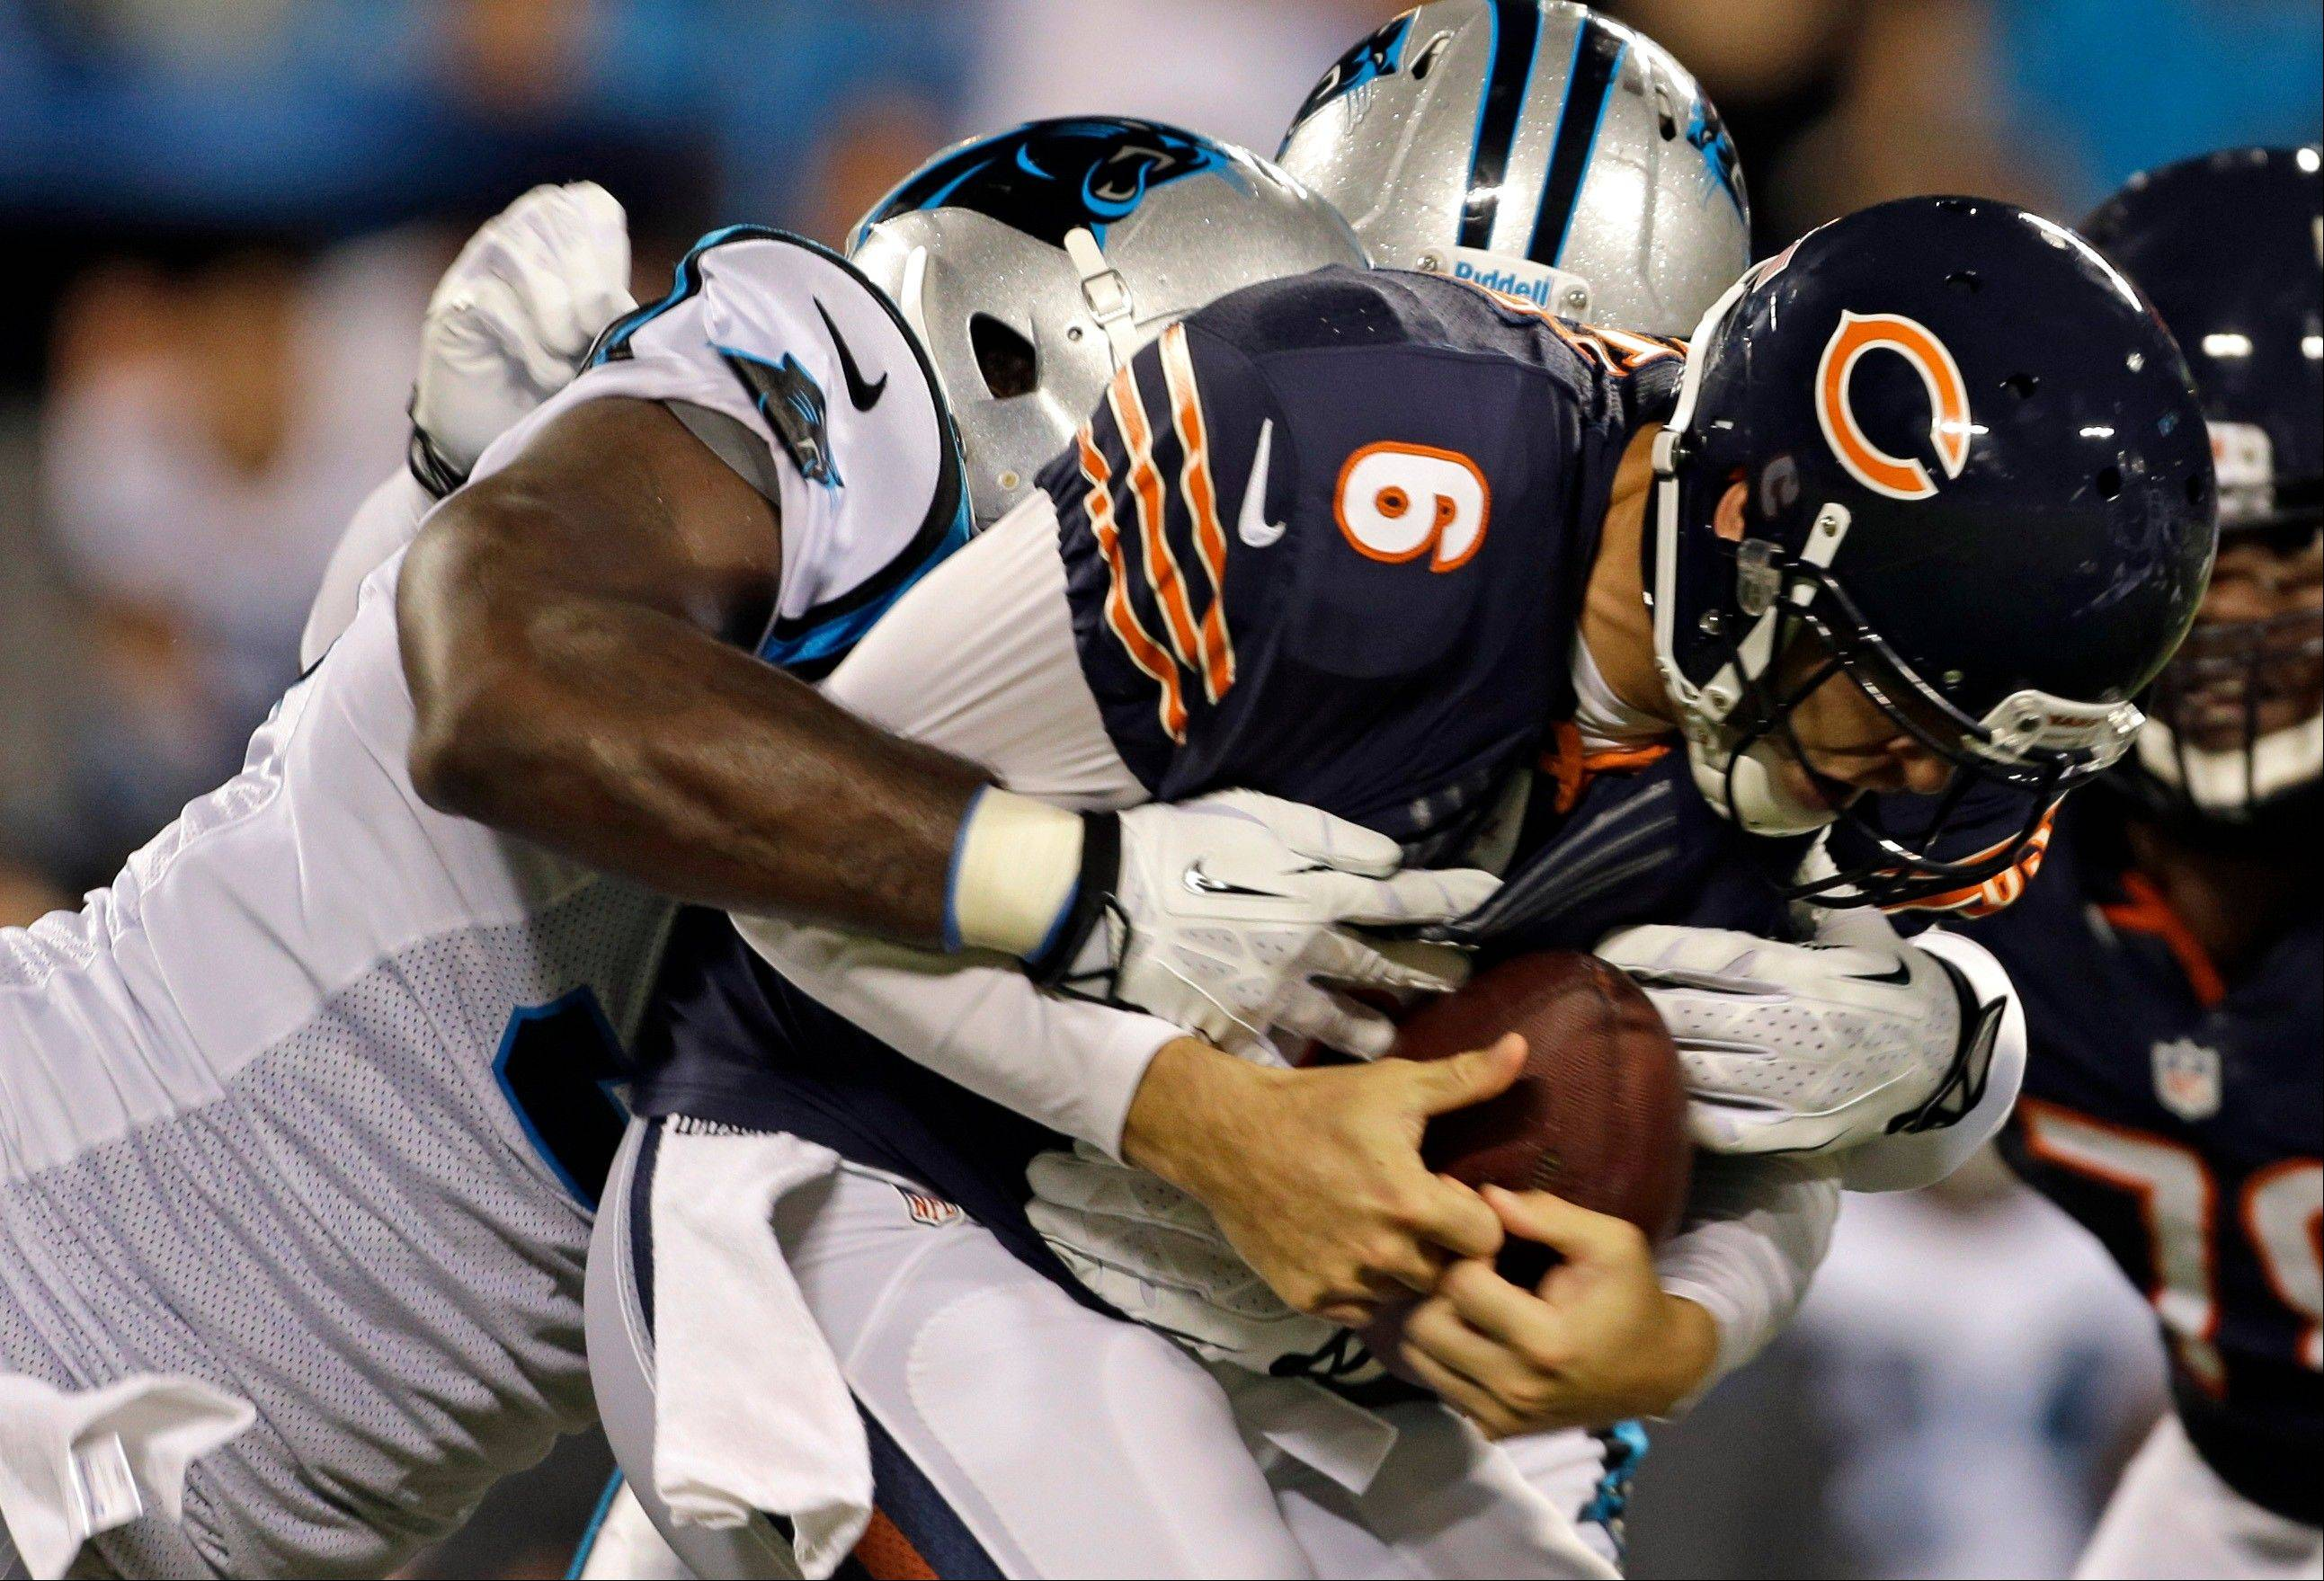 Bears quarterback Jay Cutler (6) is sacked by Carolina Panthers' Charles Johnson, left, during the first half of a preseason NFL football game in Charlotte, N.C., Friday, Aug. 9, 2013. (AP Photo/Bob Leverone)